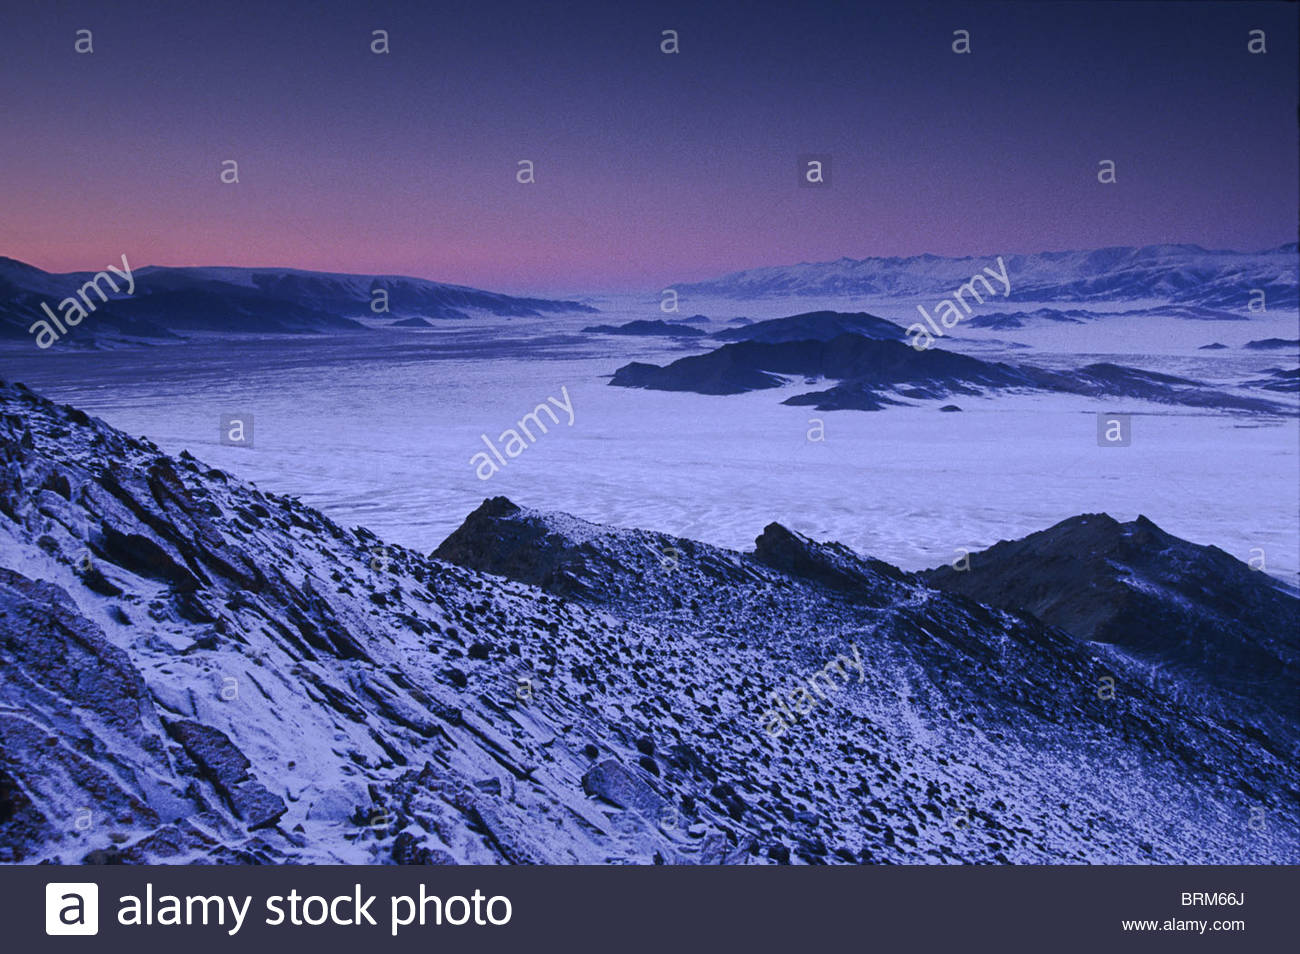 Winter landscape at dawn in a valley Stock Photo